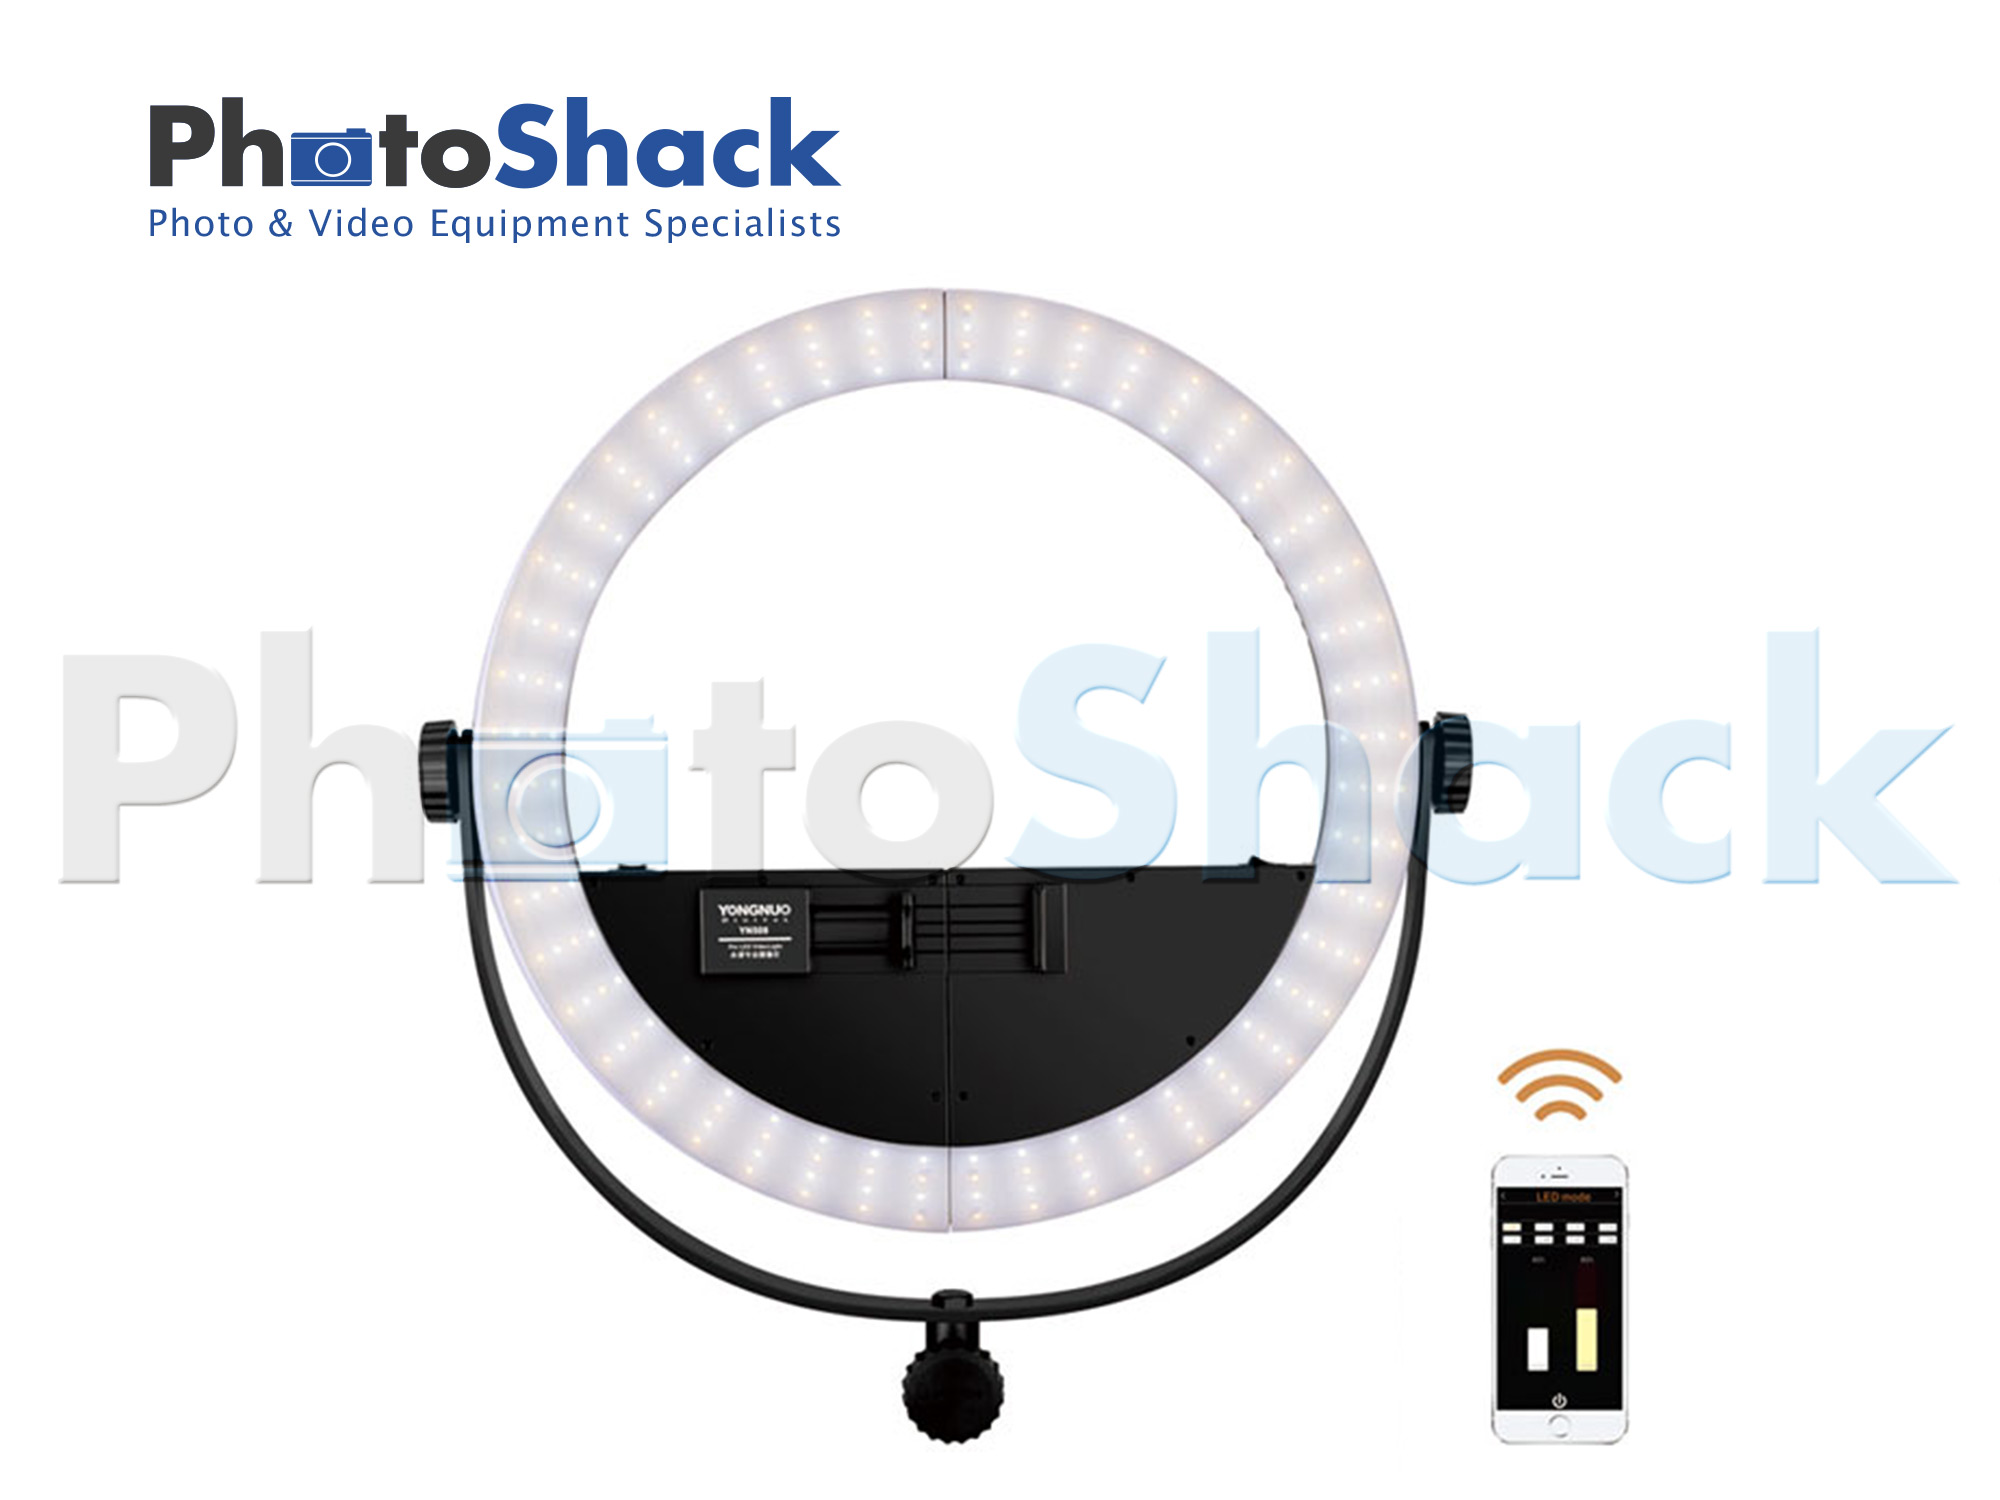 YN508S 2-in-1 Splitable LED ring light 3200-5500K